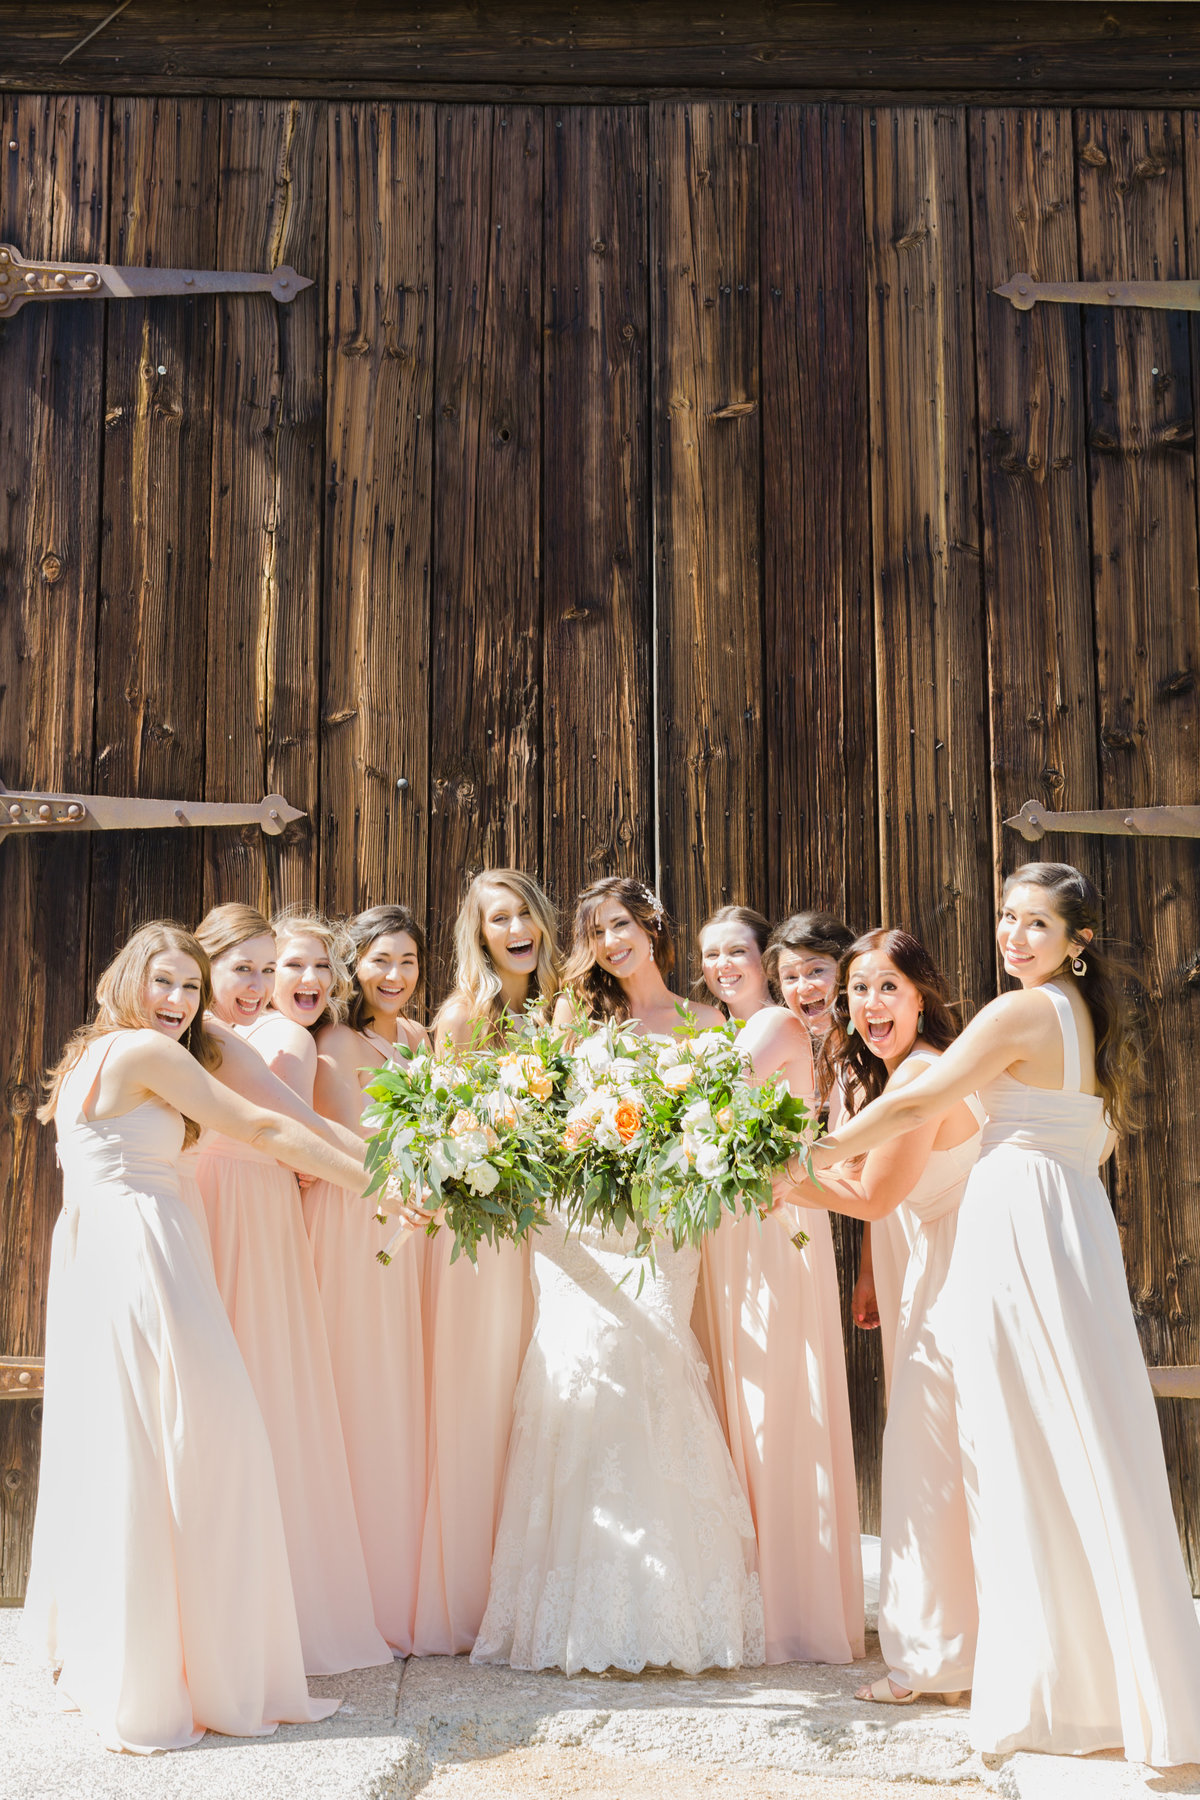 Erica Mendenhall Photography_Barn Wedding_MP_6530web